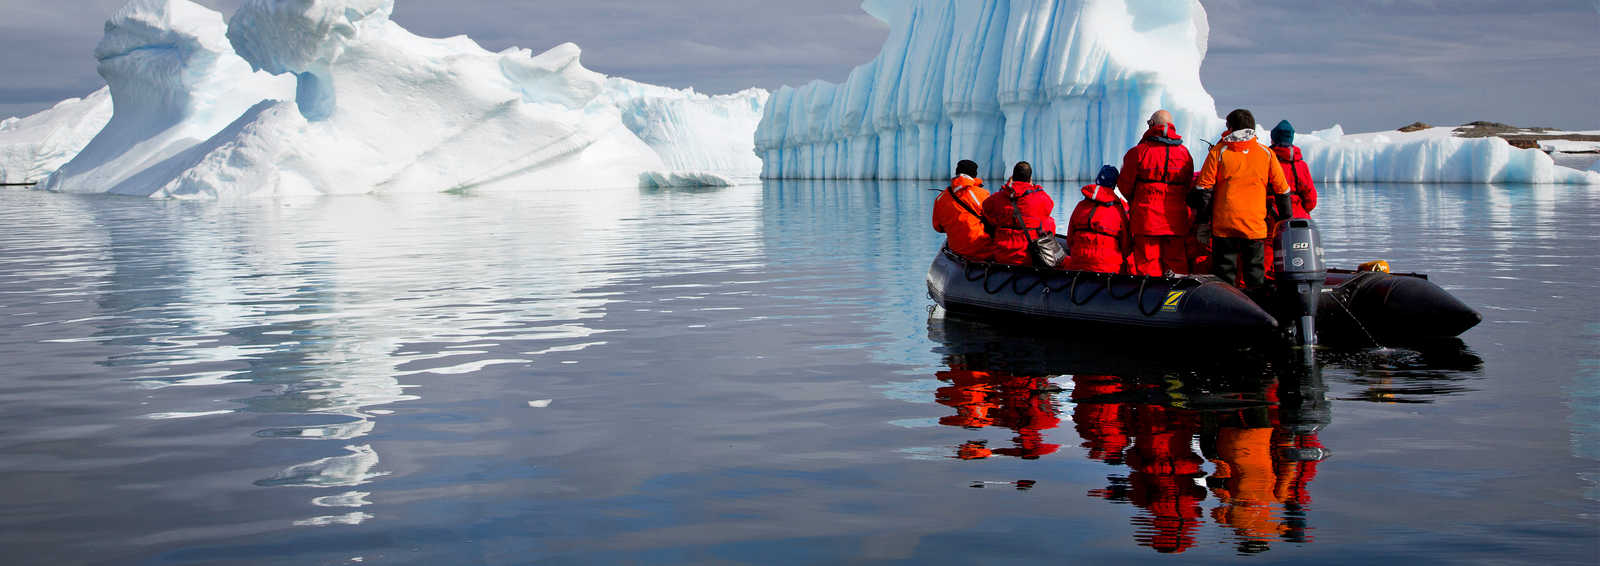 Looking at the icebergs from the zodiac